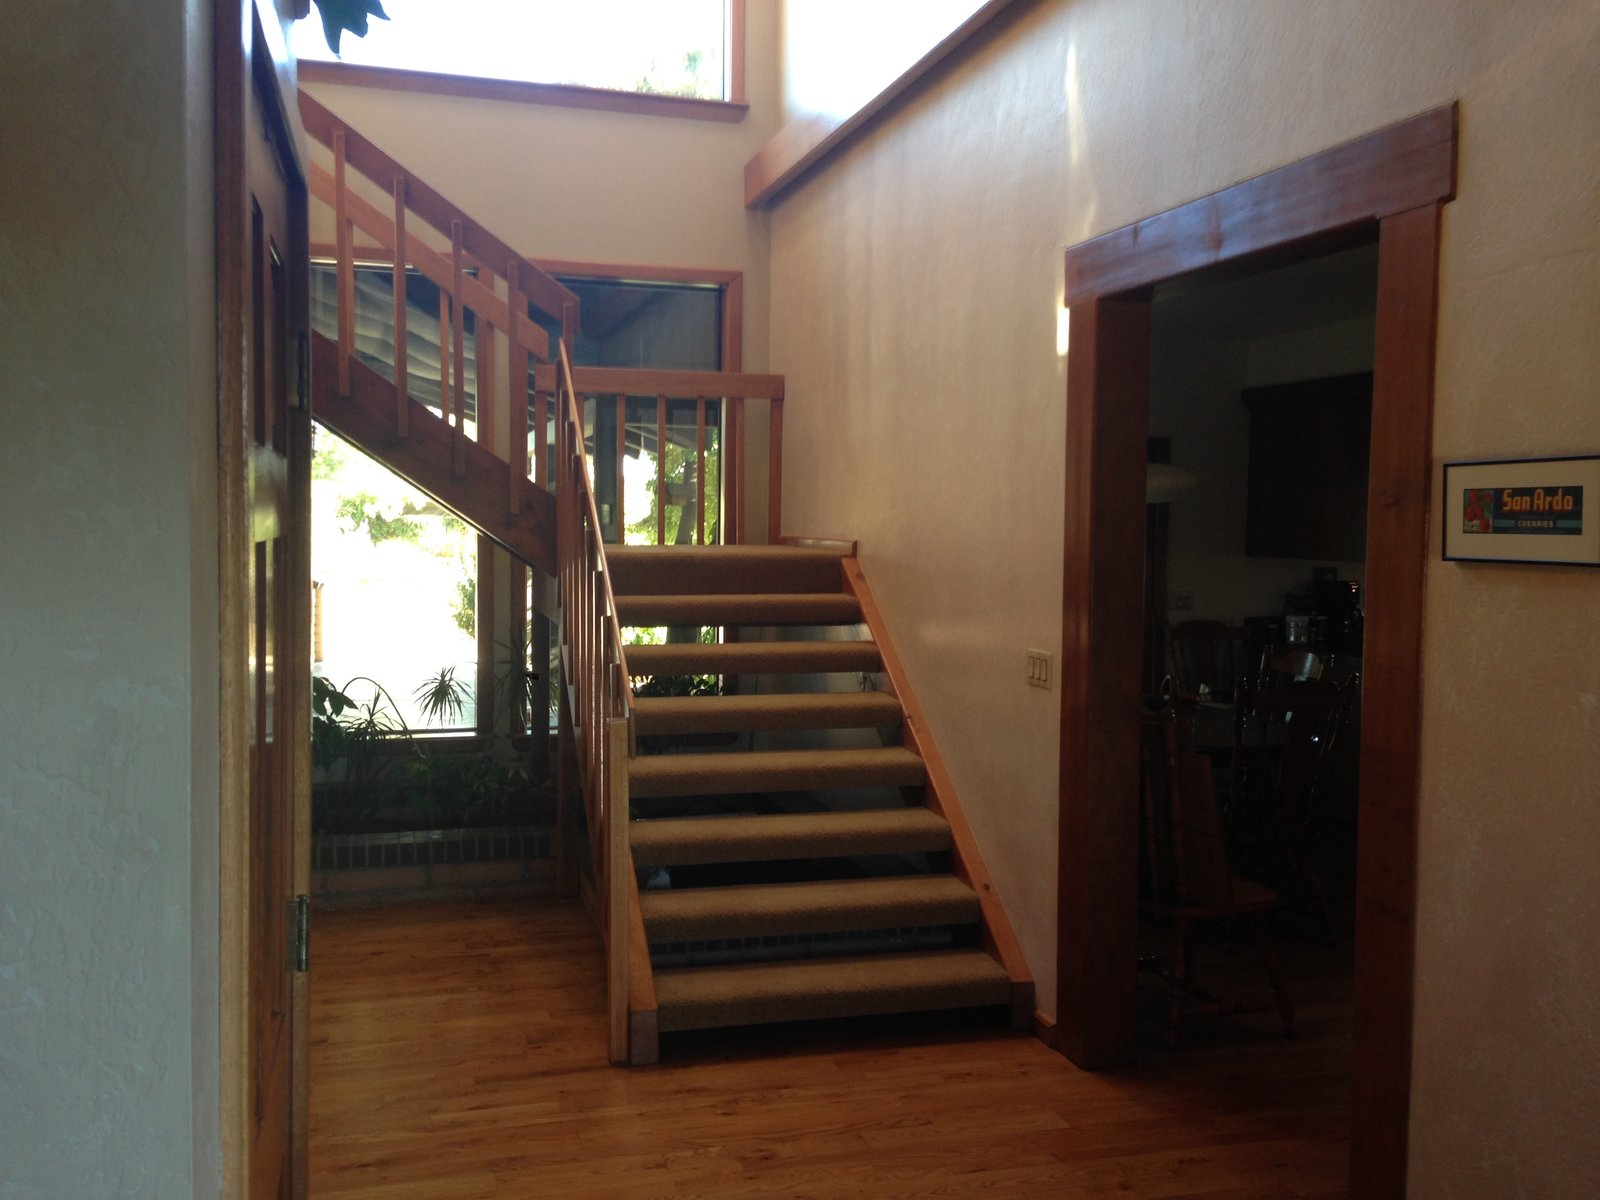 Before: House for Grandparents staircase